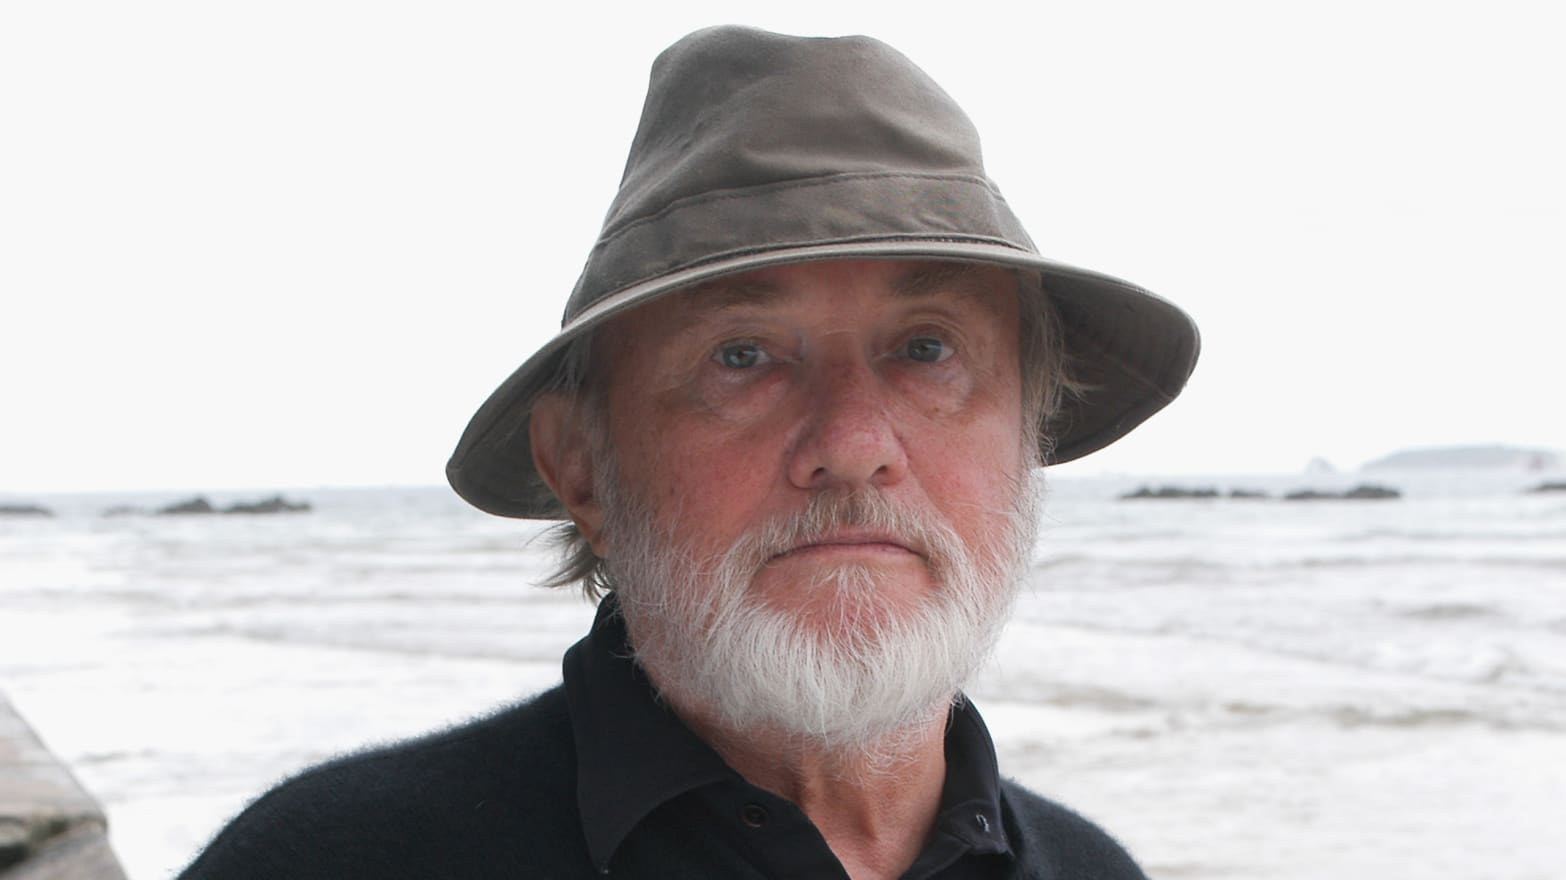 Robert Stones Fun With Problems >> The American Prophet Of Delusion Robert Stone S Last Major Interview